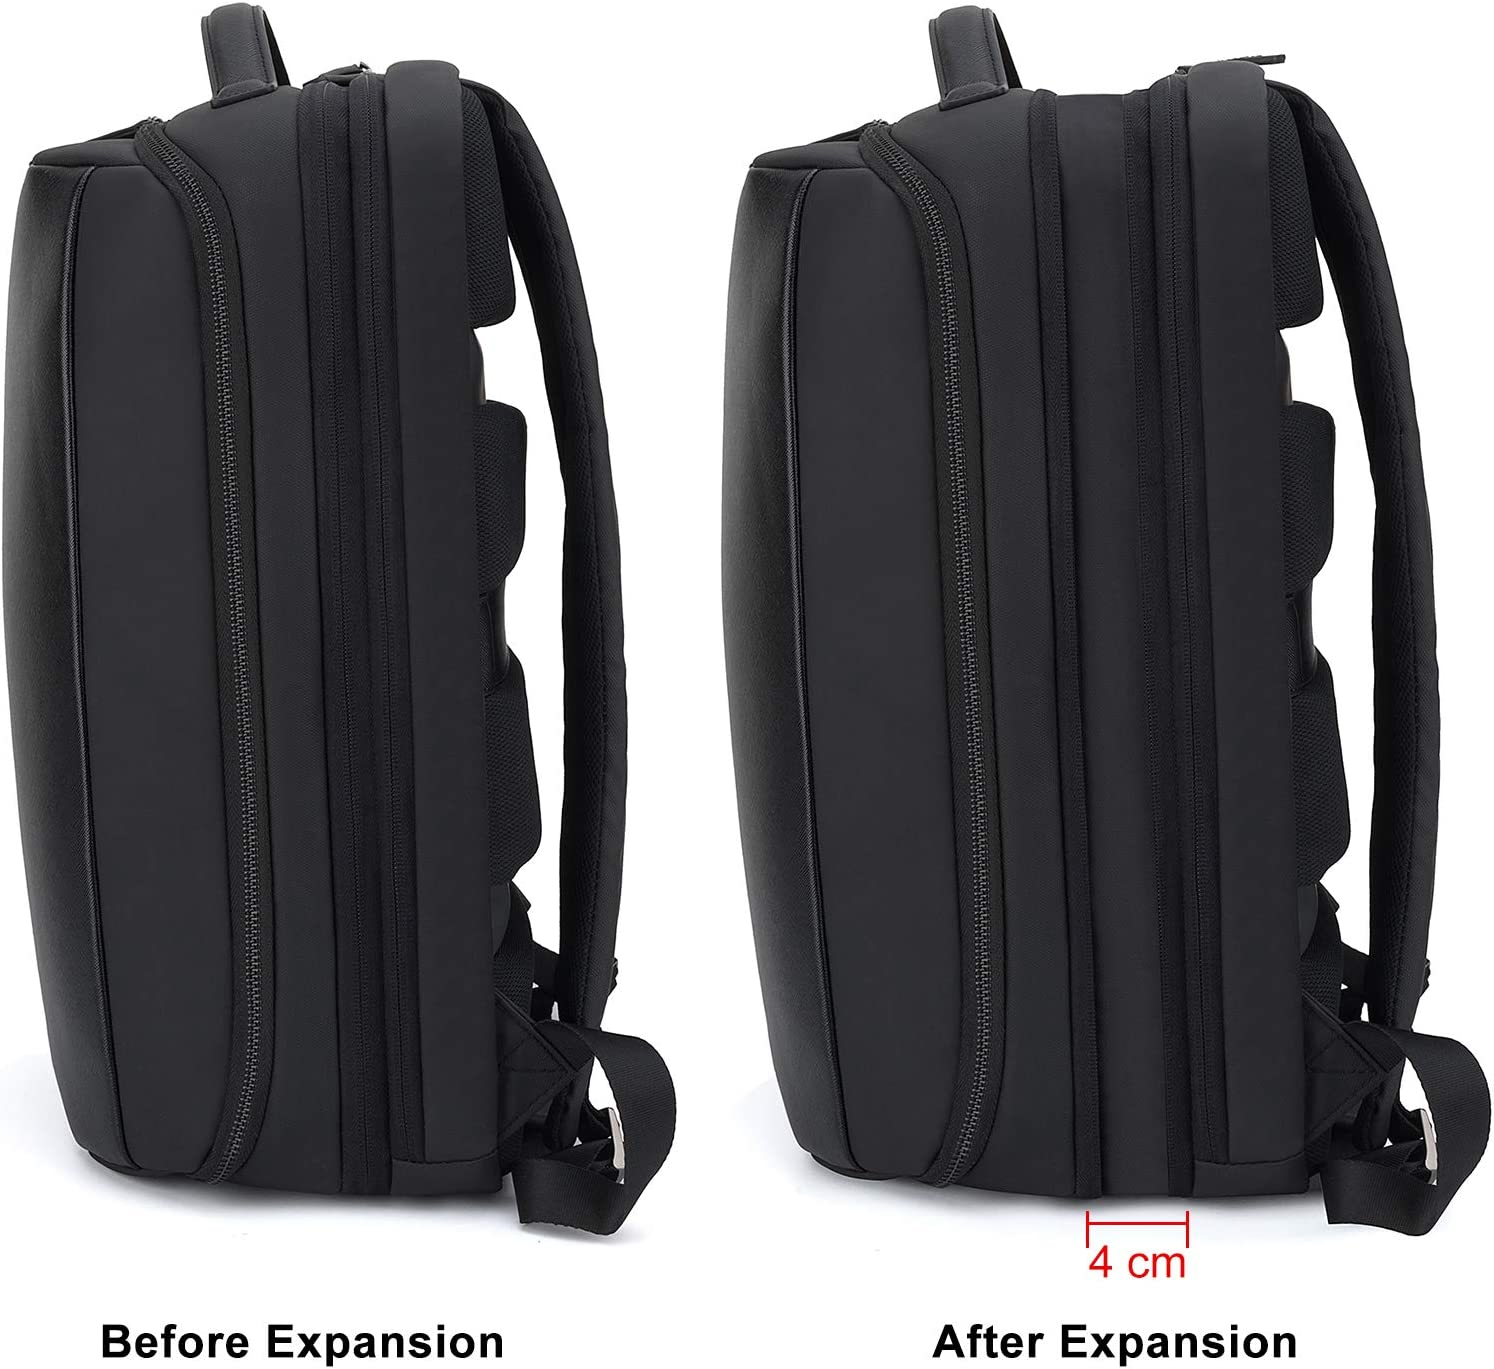 Amazon coupon code for 40L Carry-On Travel Large 17-inch Laptop